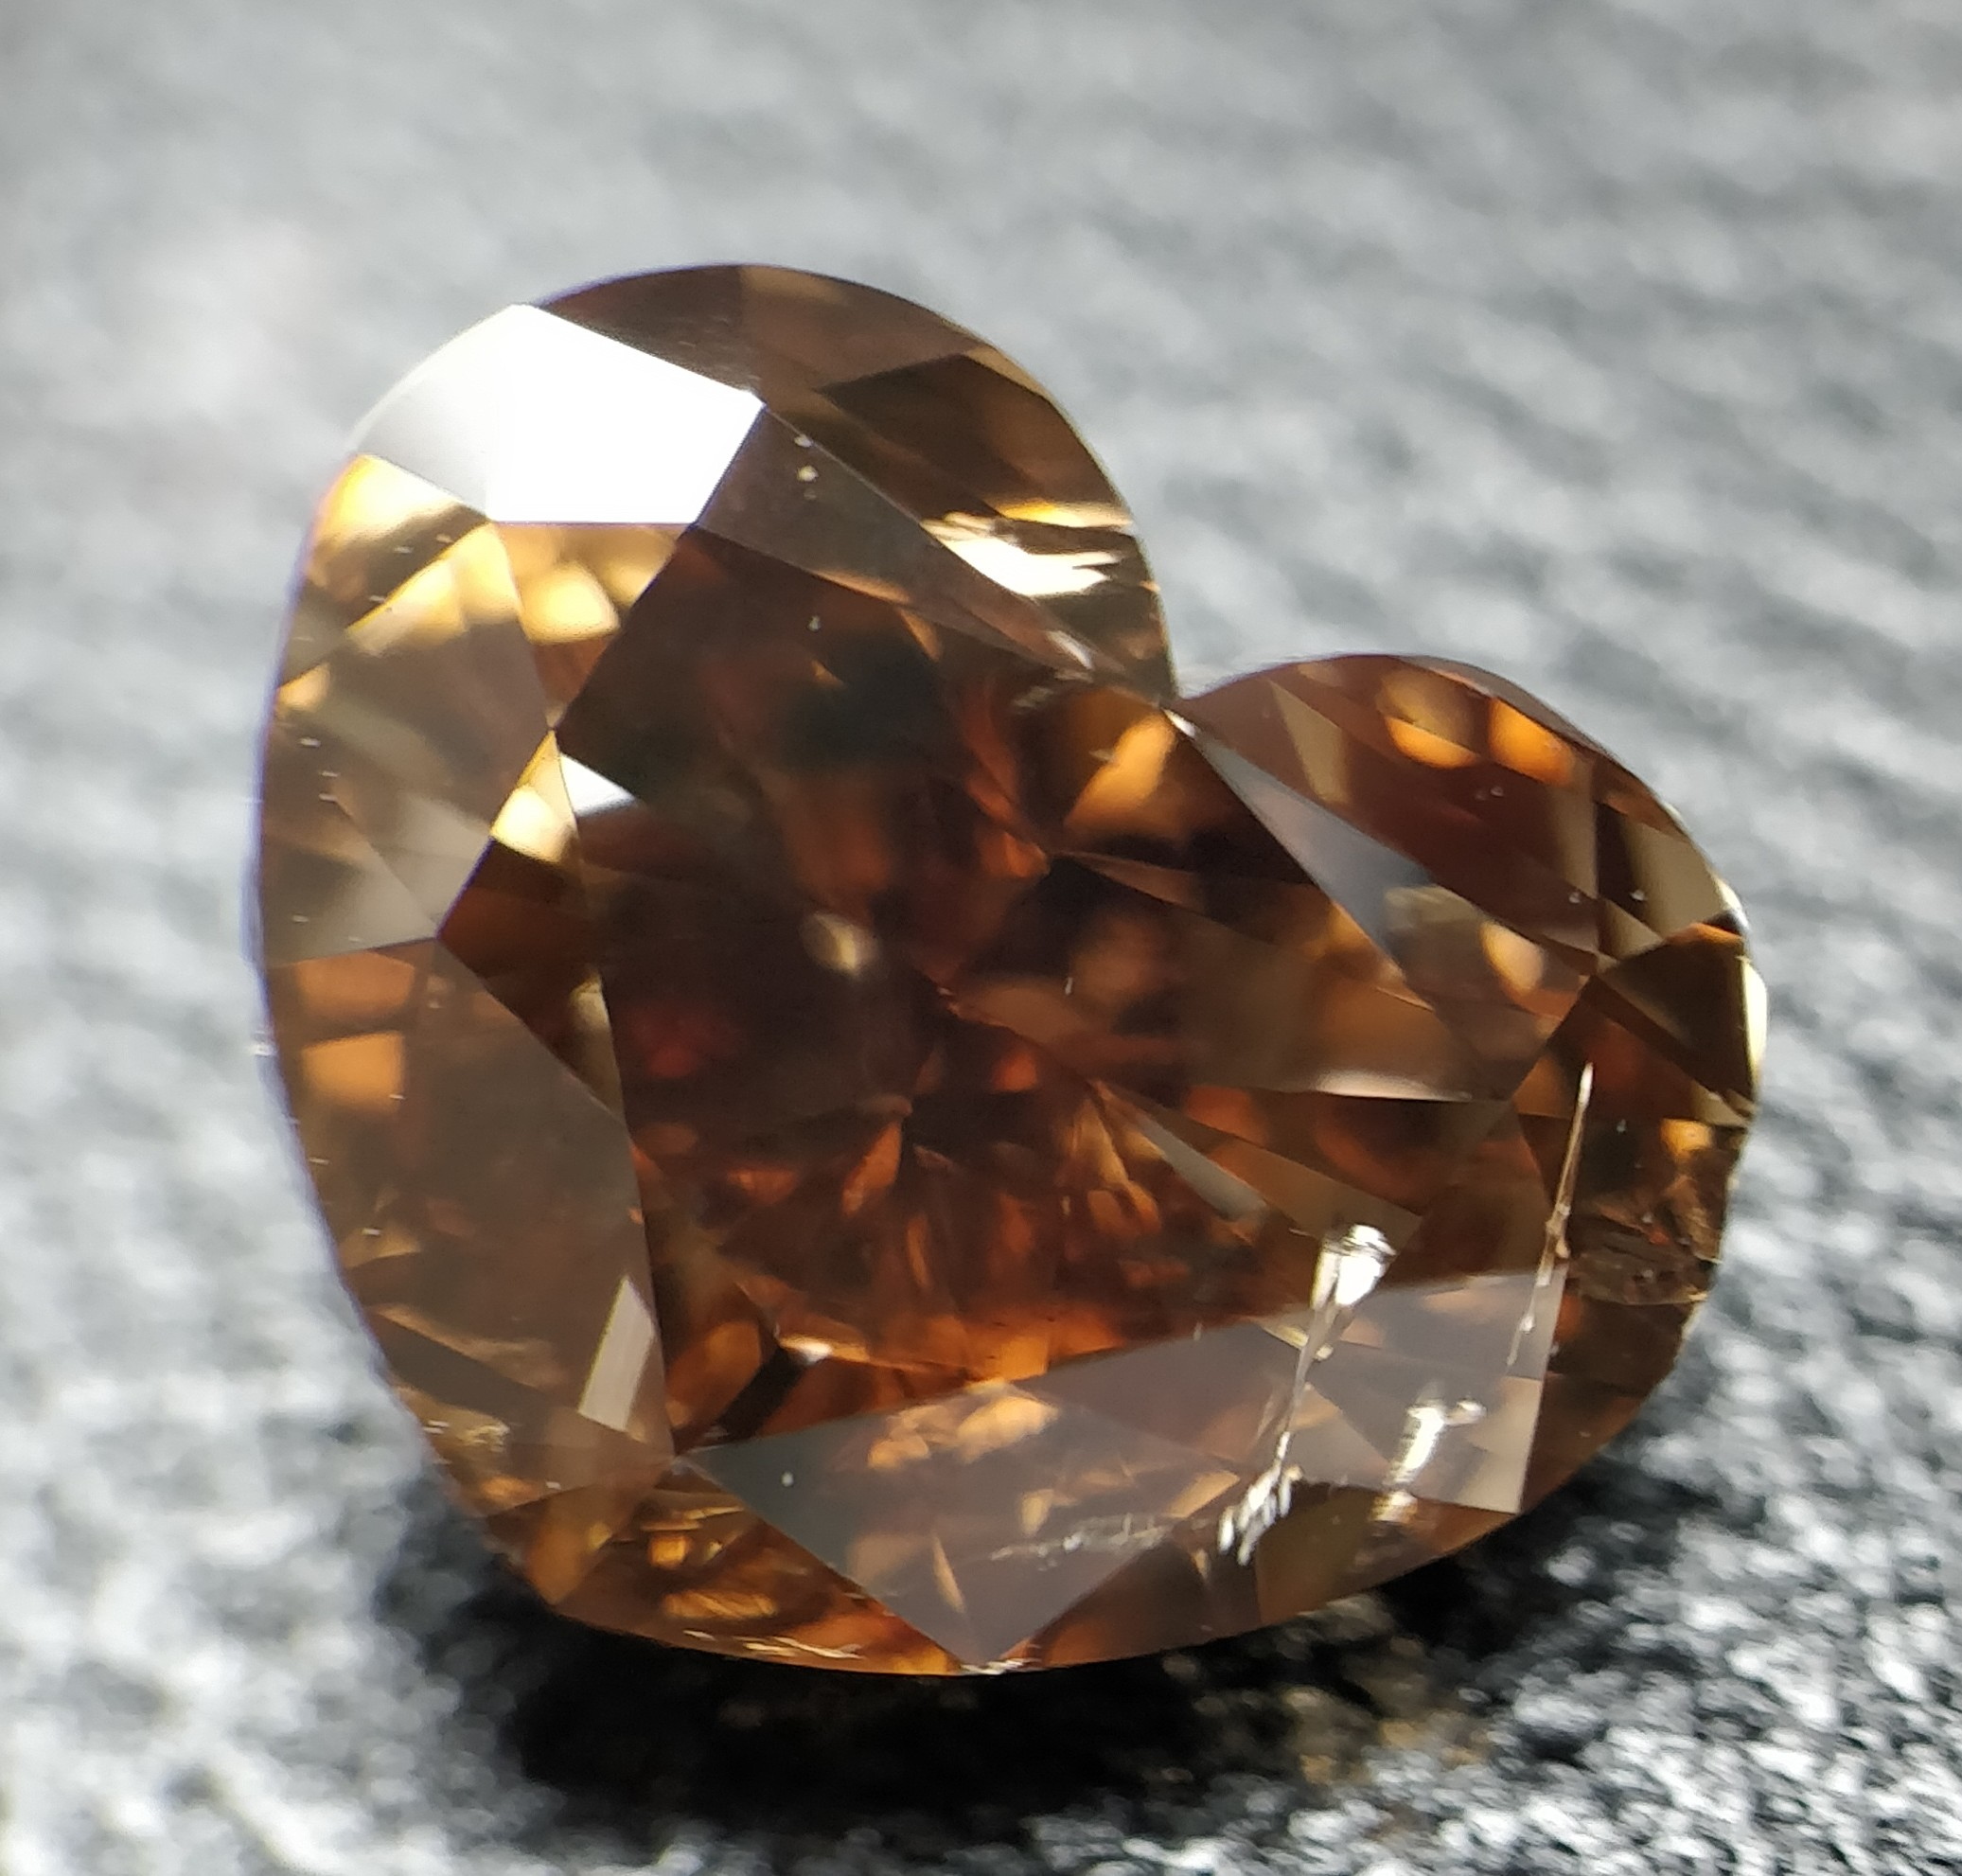 Heart Cut 3.010 Carat Orange Color I1 Clarity Sku 1777135428